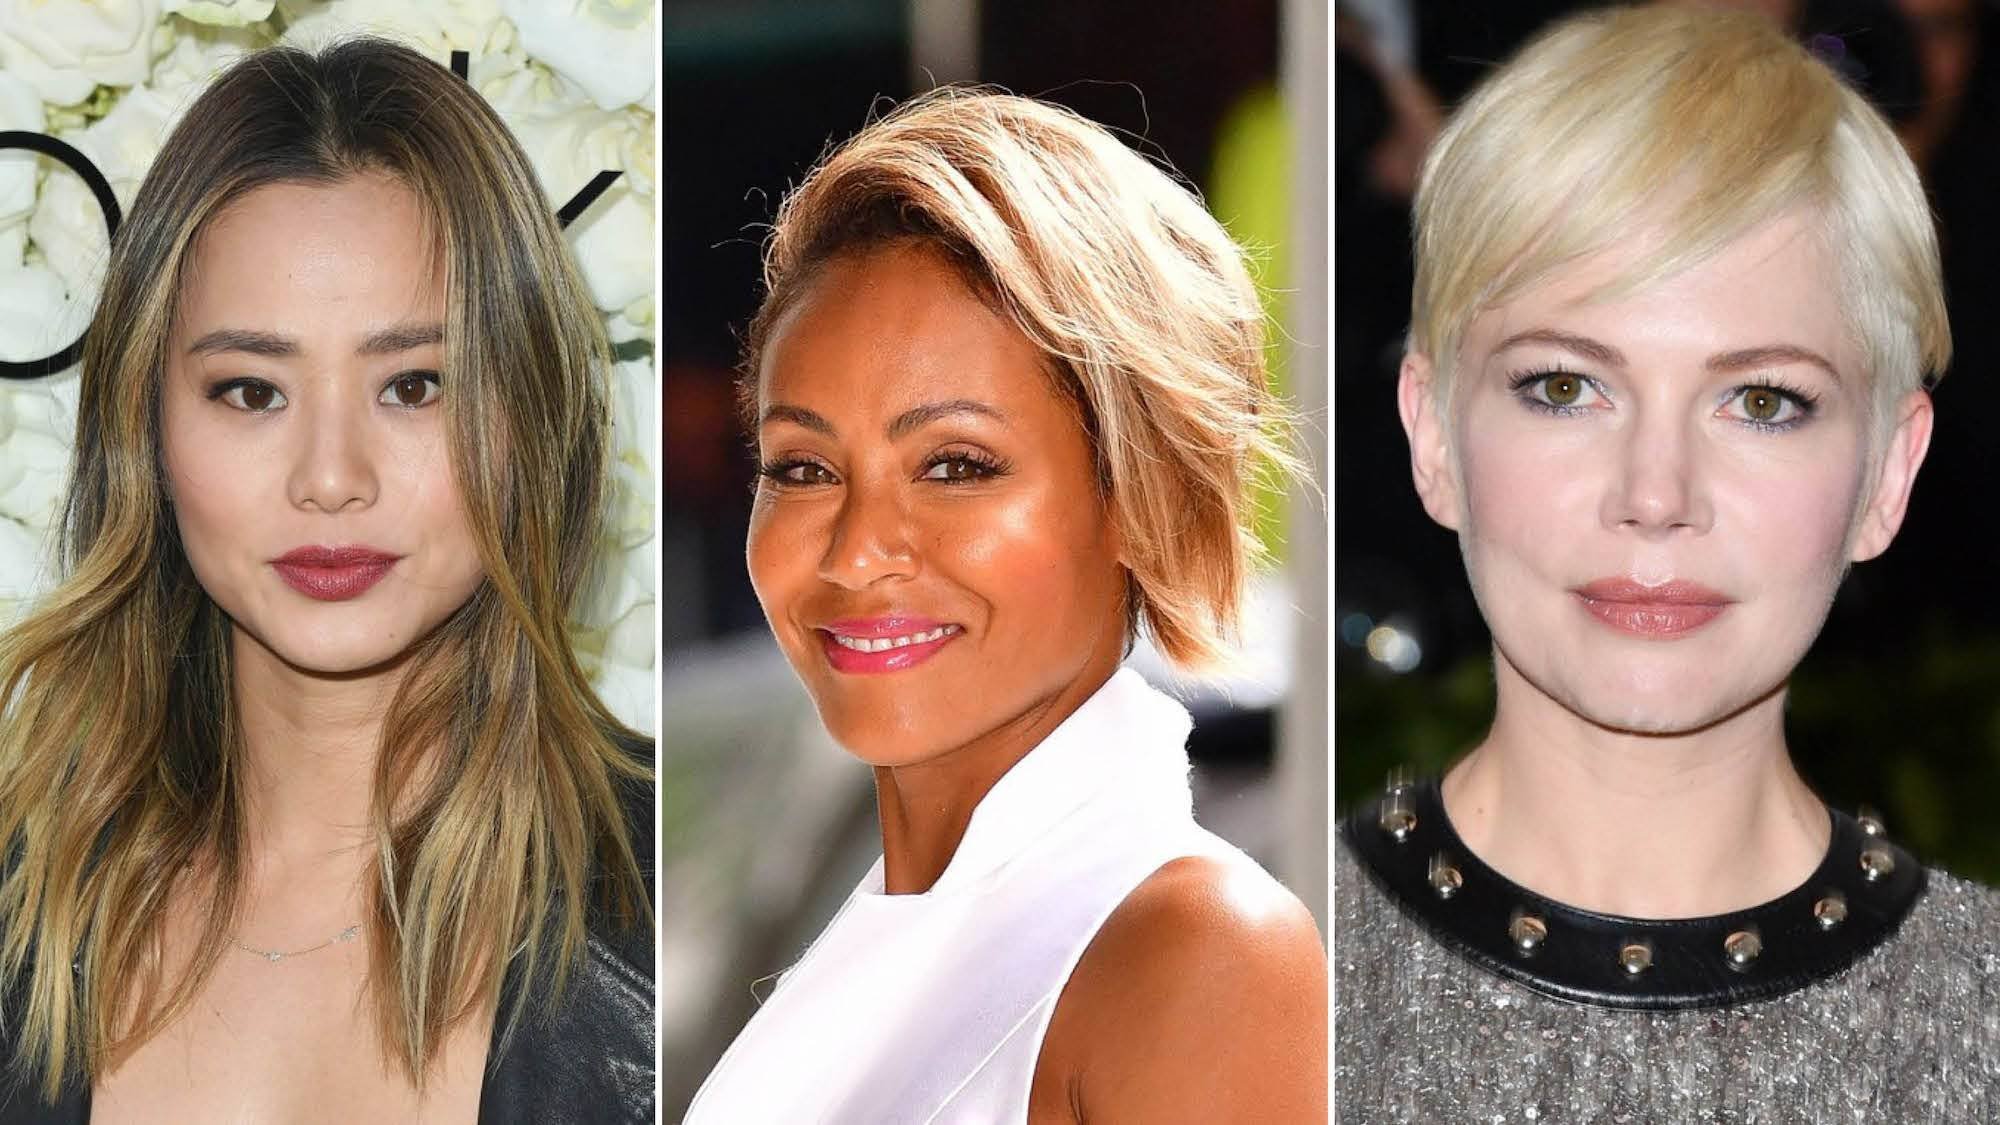 3 hairstyles showing the best looks for thin hair